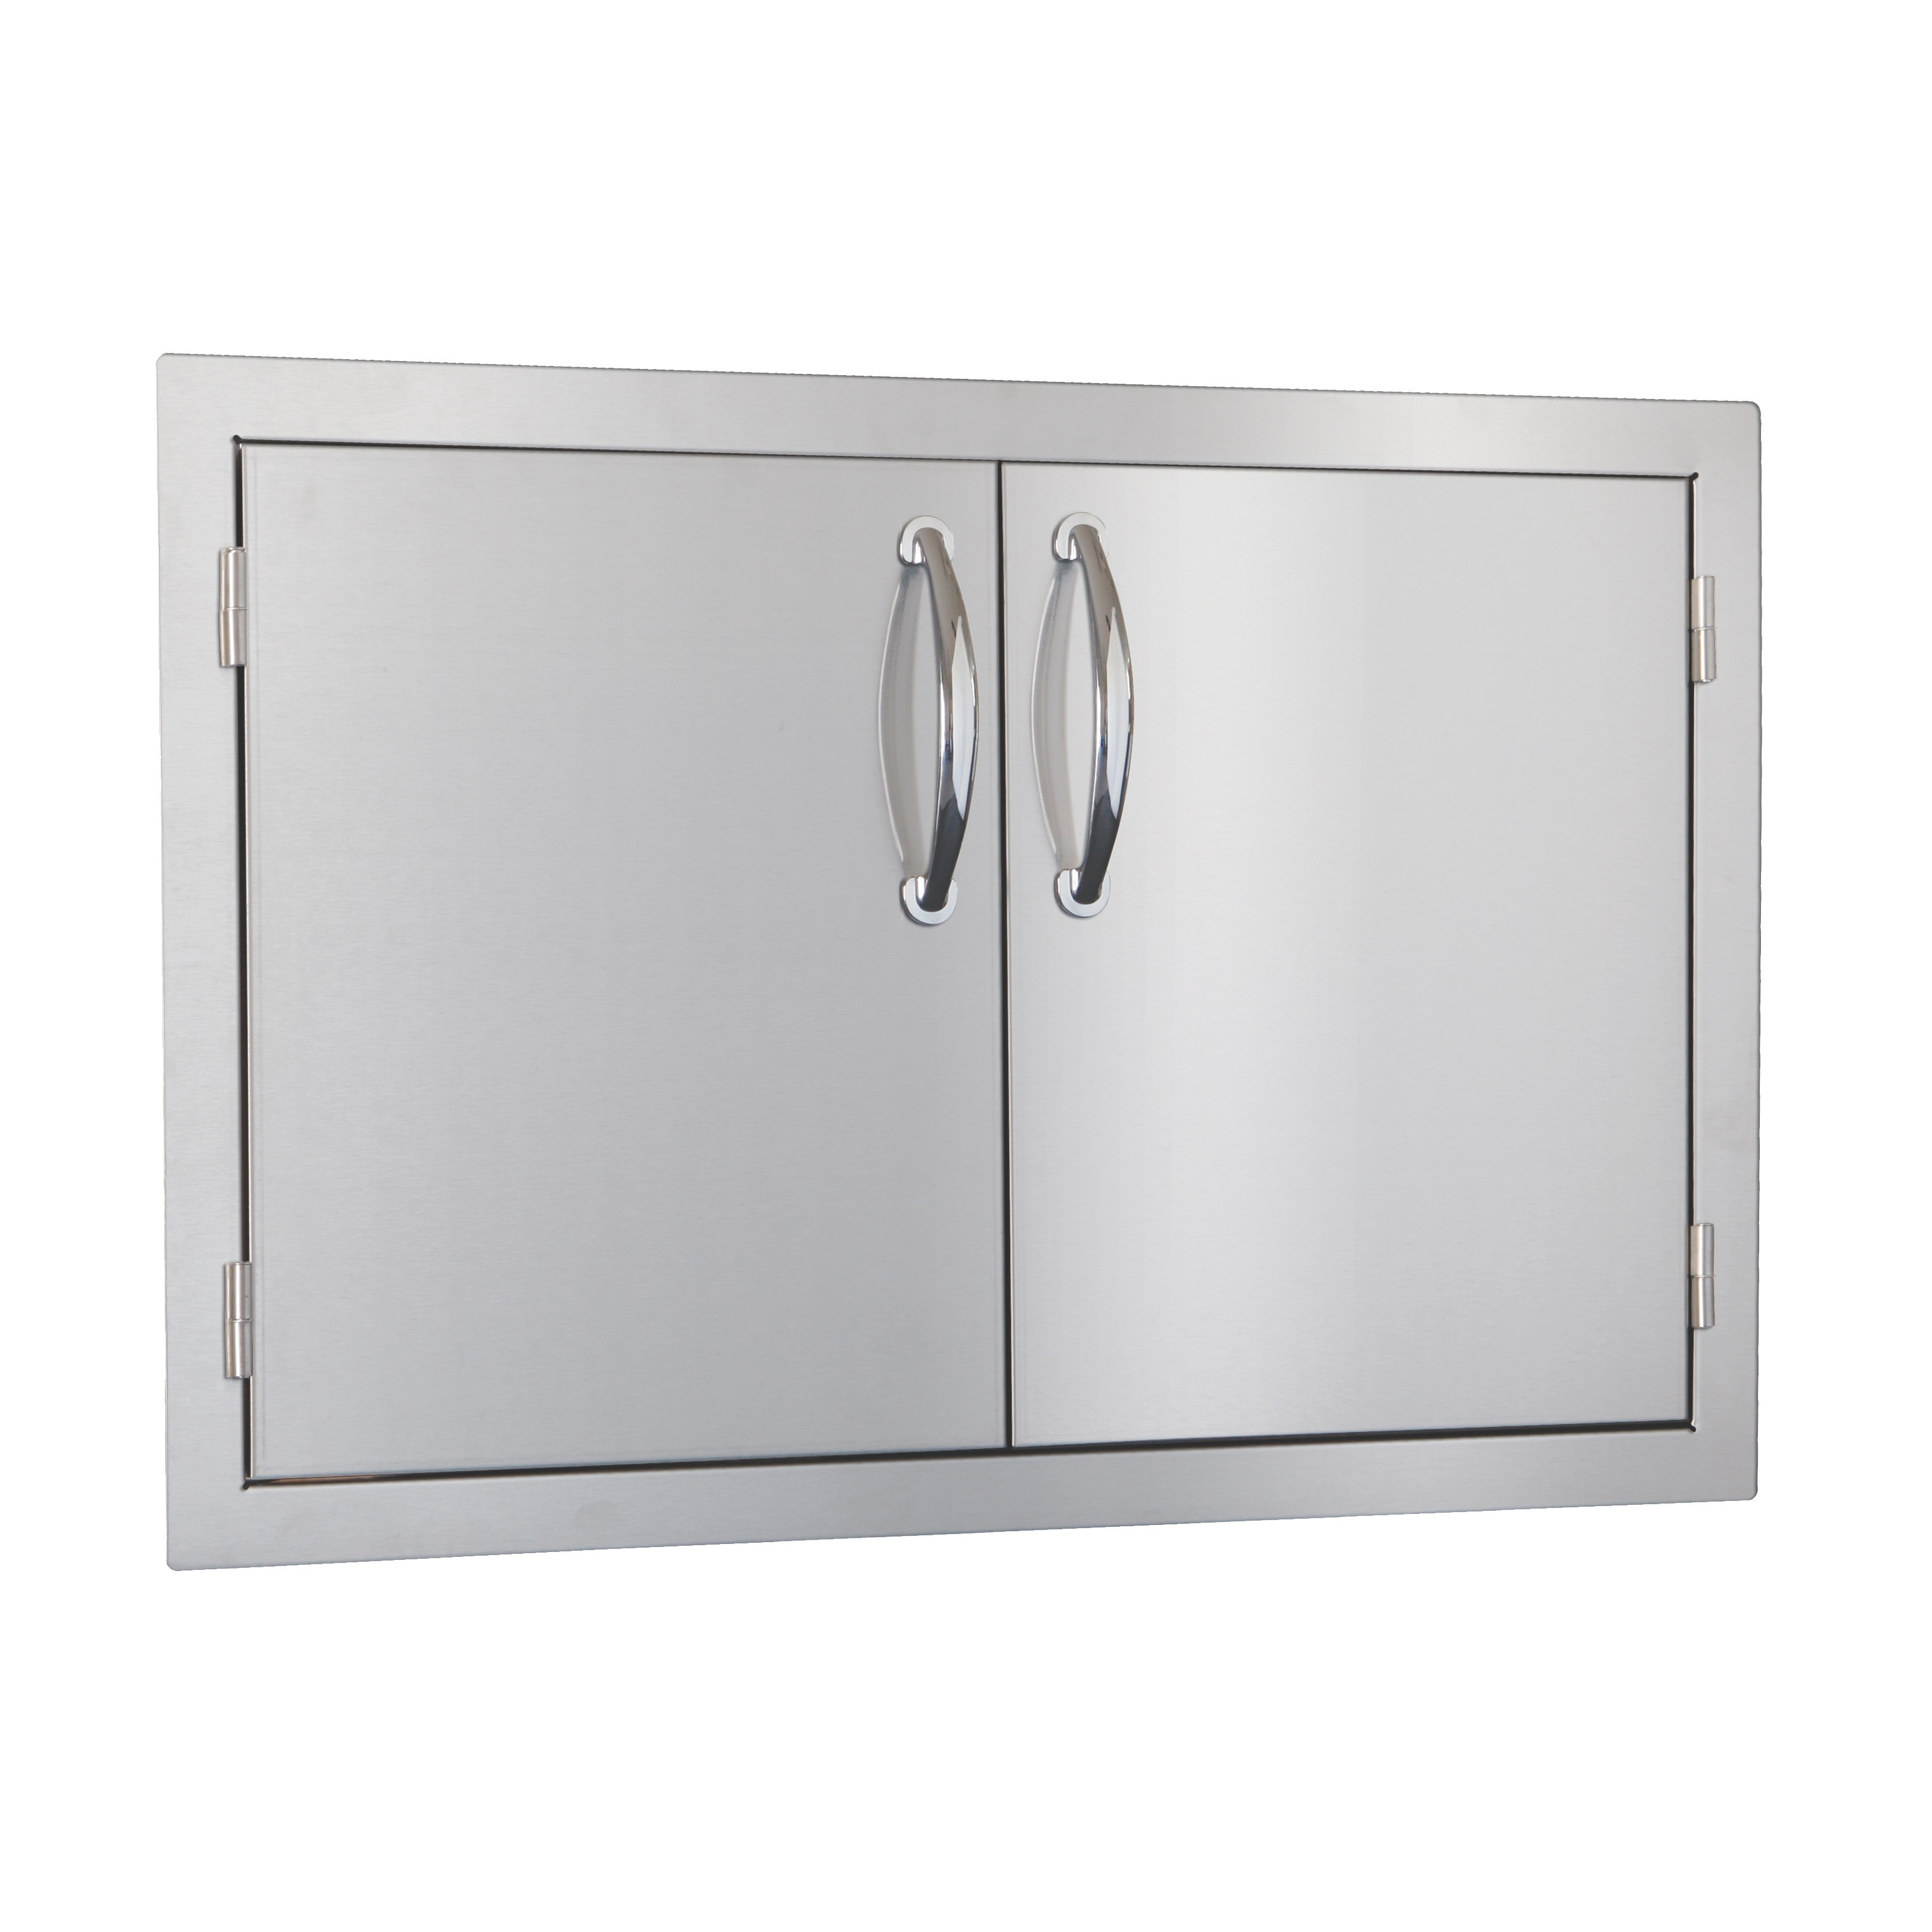 "Summerset 30"" Double Doors at Sears.com"